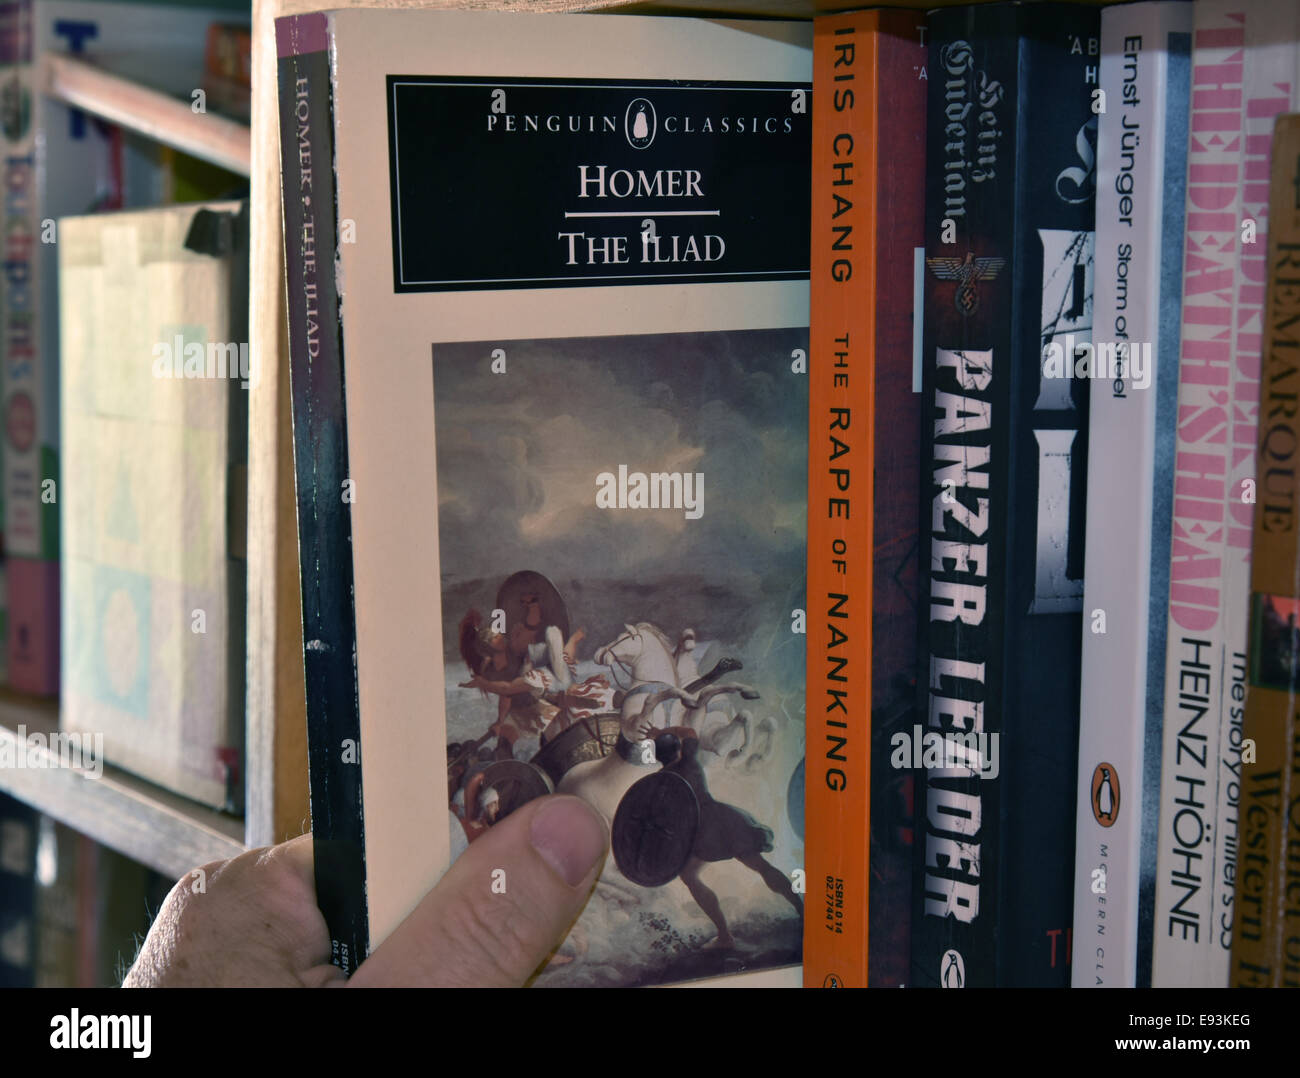 A hand removing a copy of Homer's The Iliad from a bookshelf - Stock Image